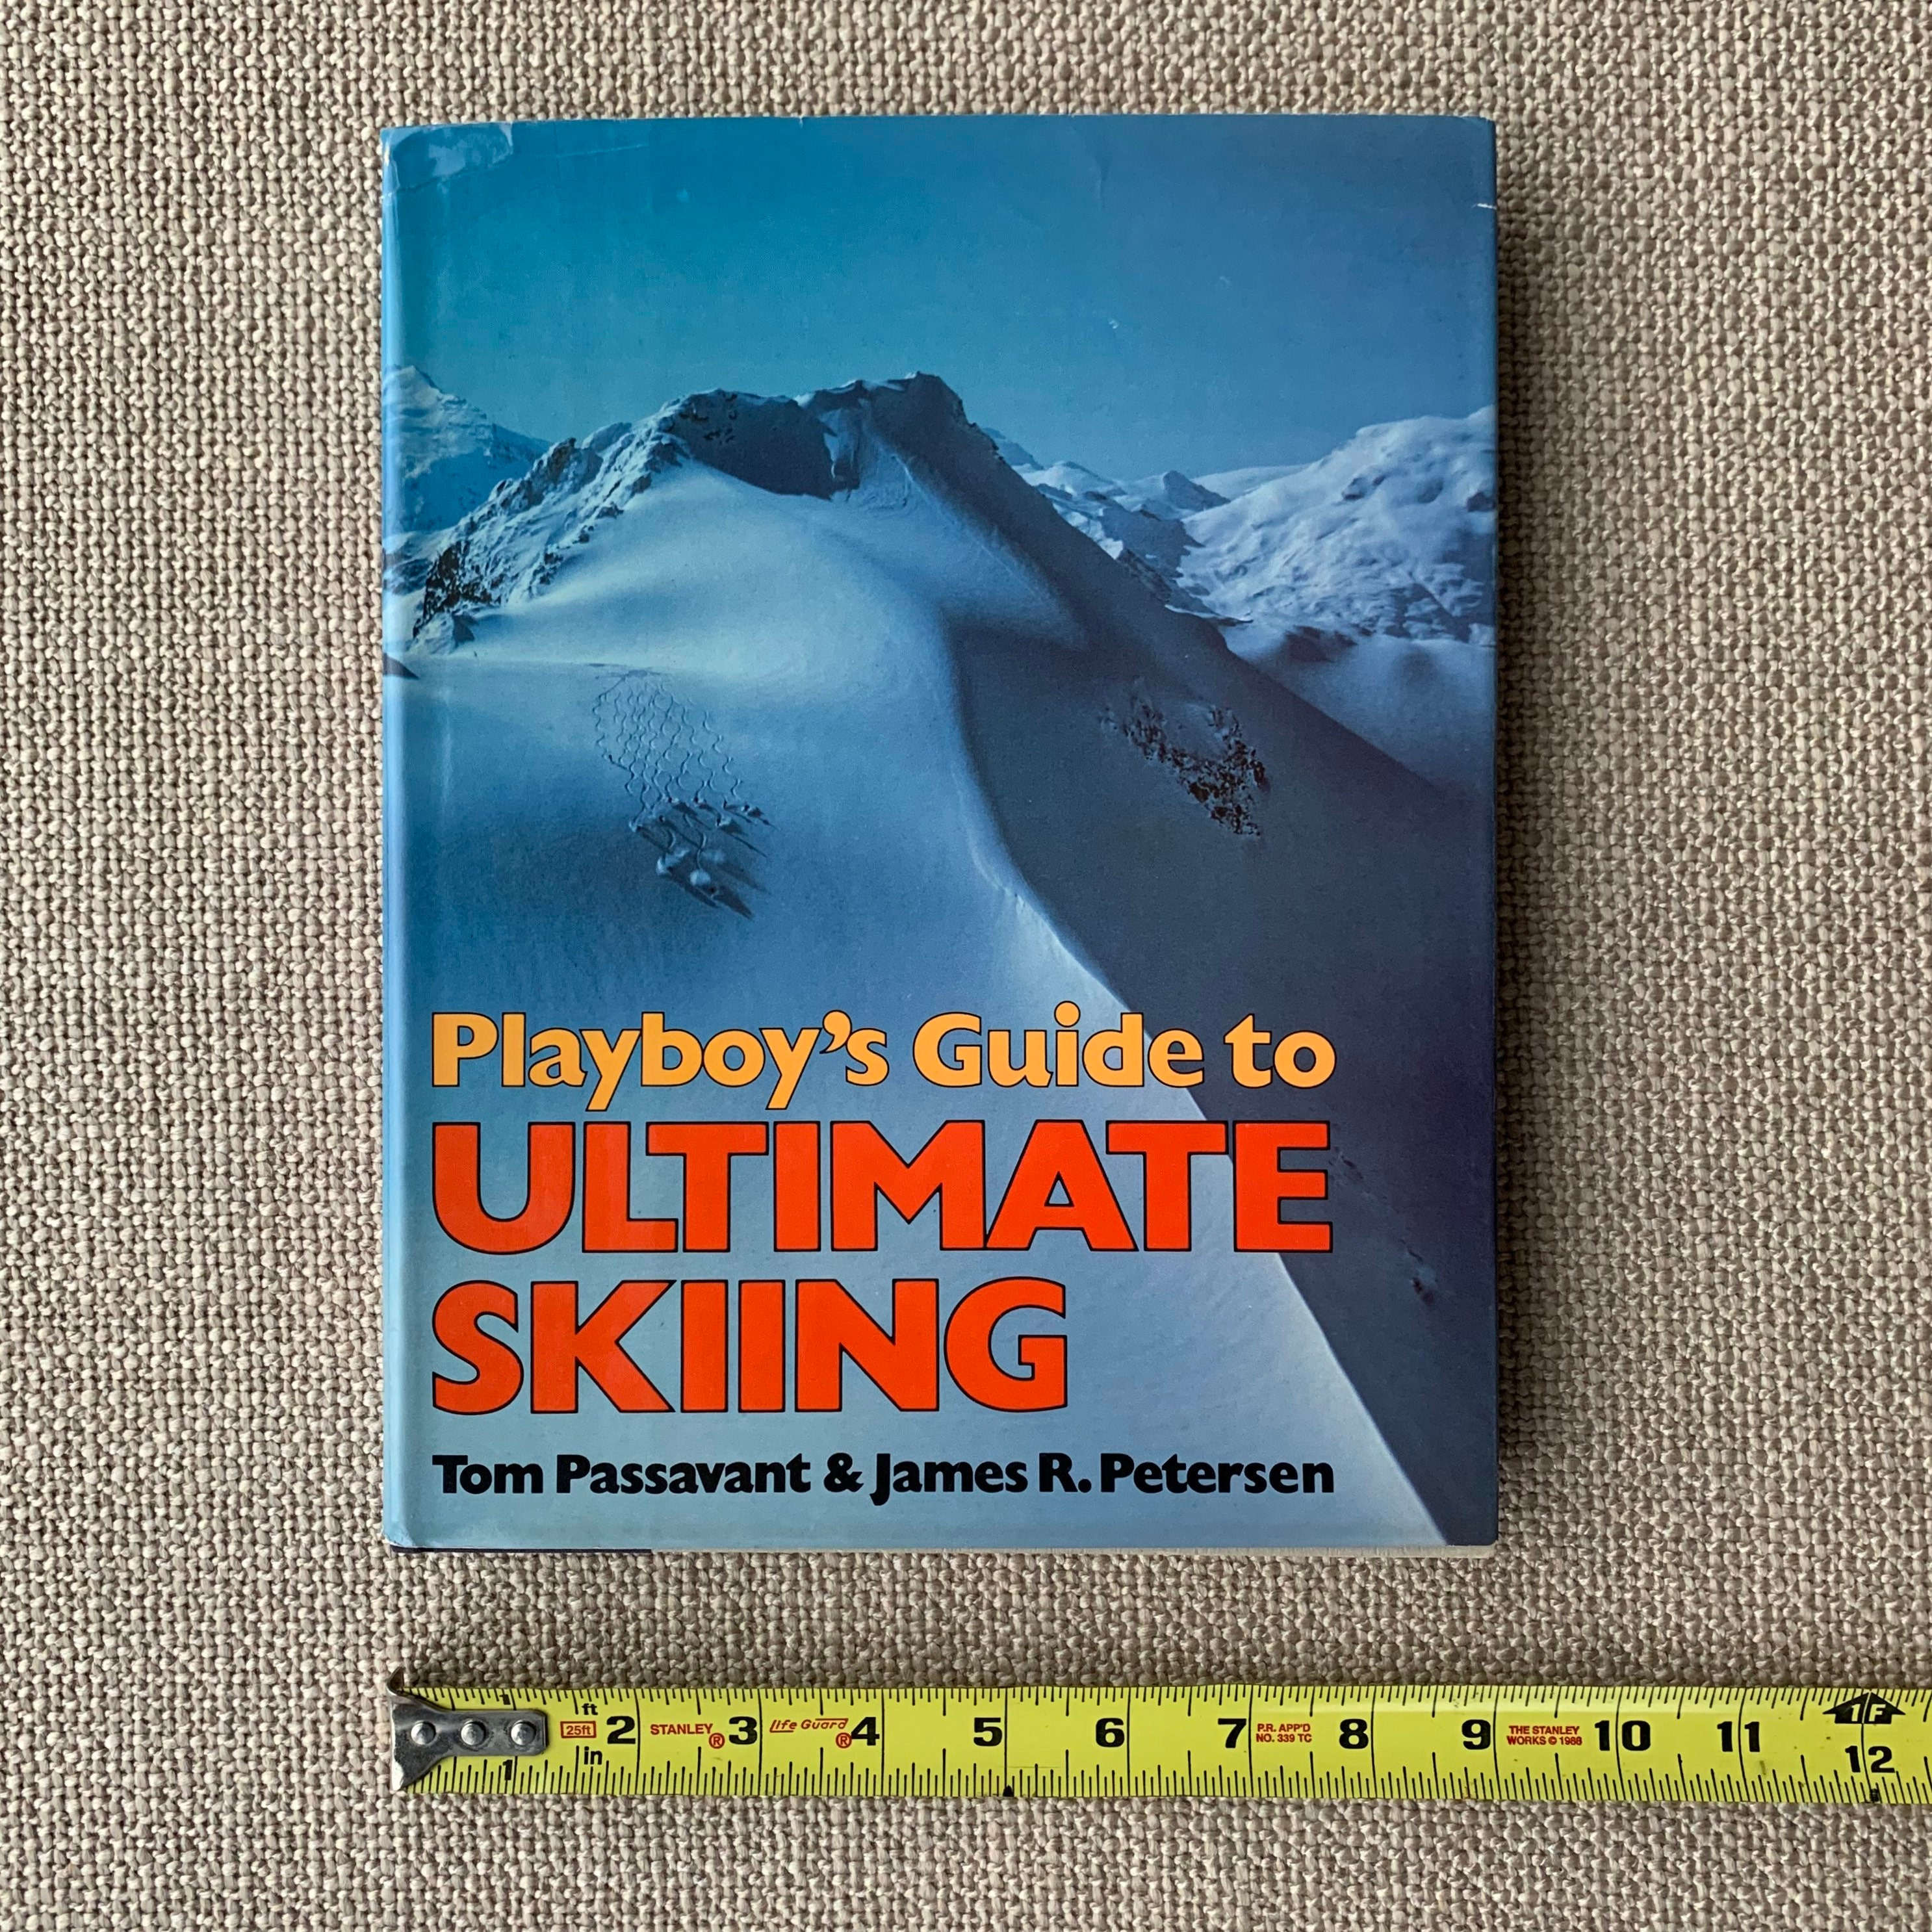 Playboys Guide to Skiing